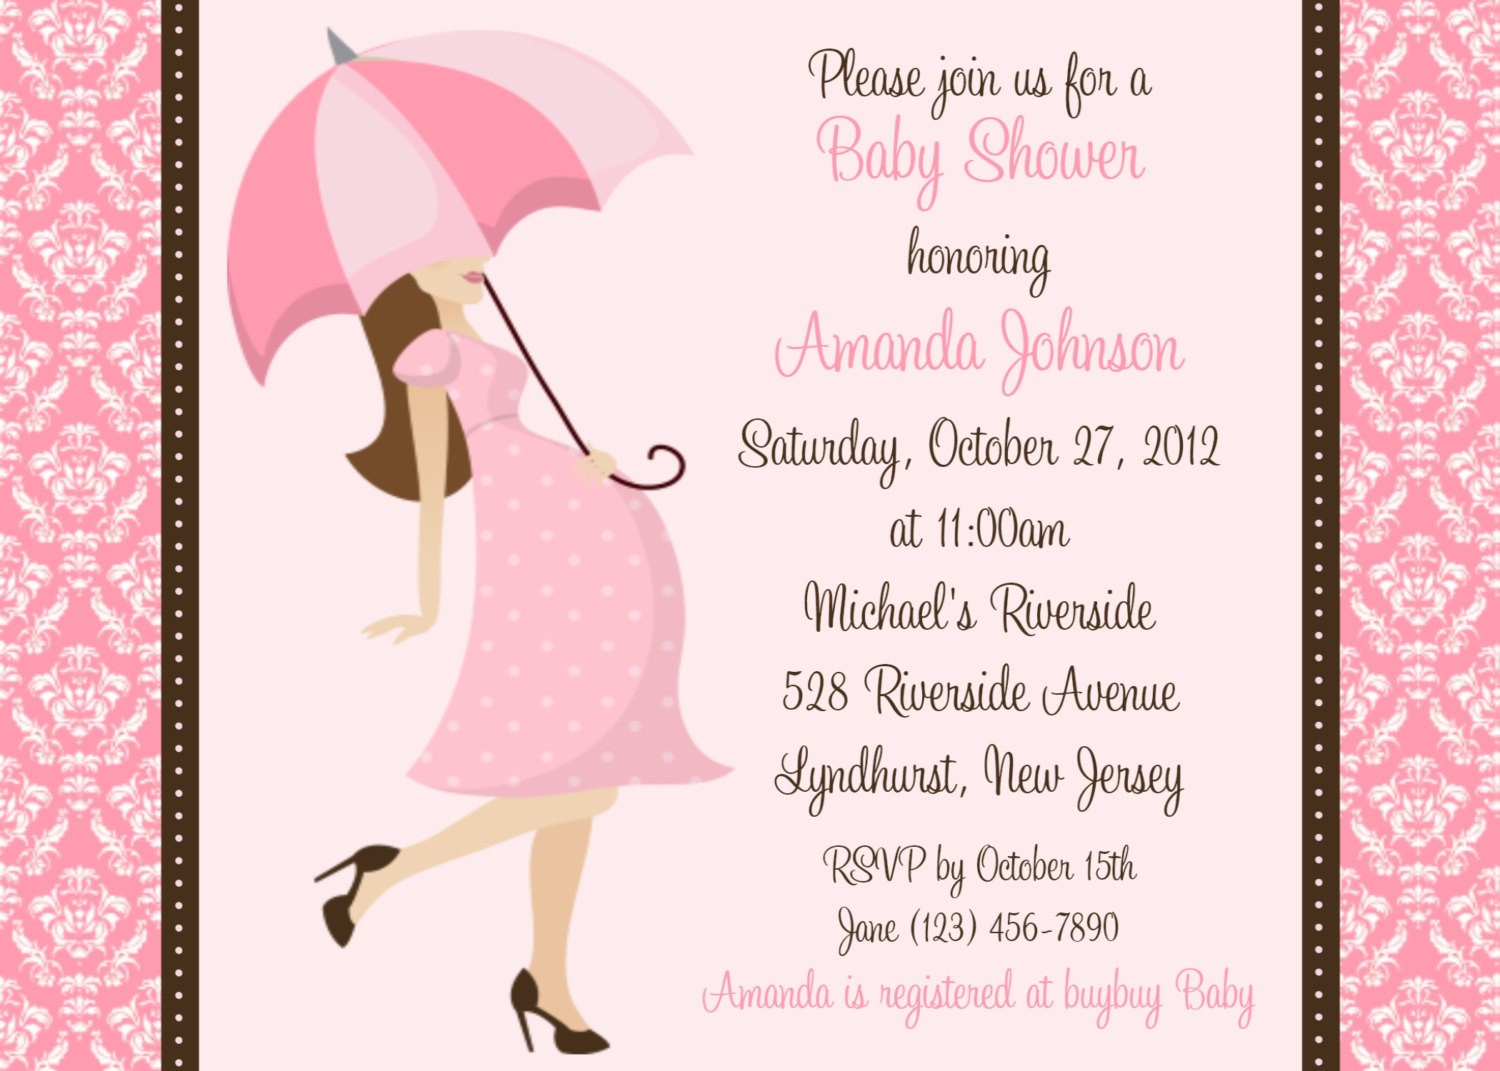 Full Size of Baby Shower:baby Shower Invitations Baby Shower Favors Baby Shower Tableware Baby Shower Ideas For Girls Elegant Baby Shower